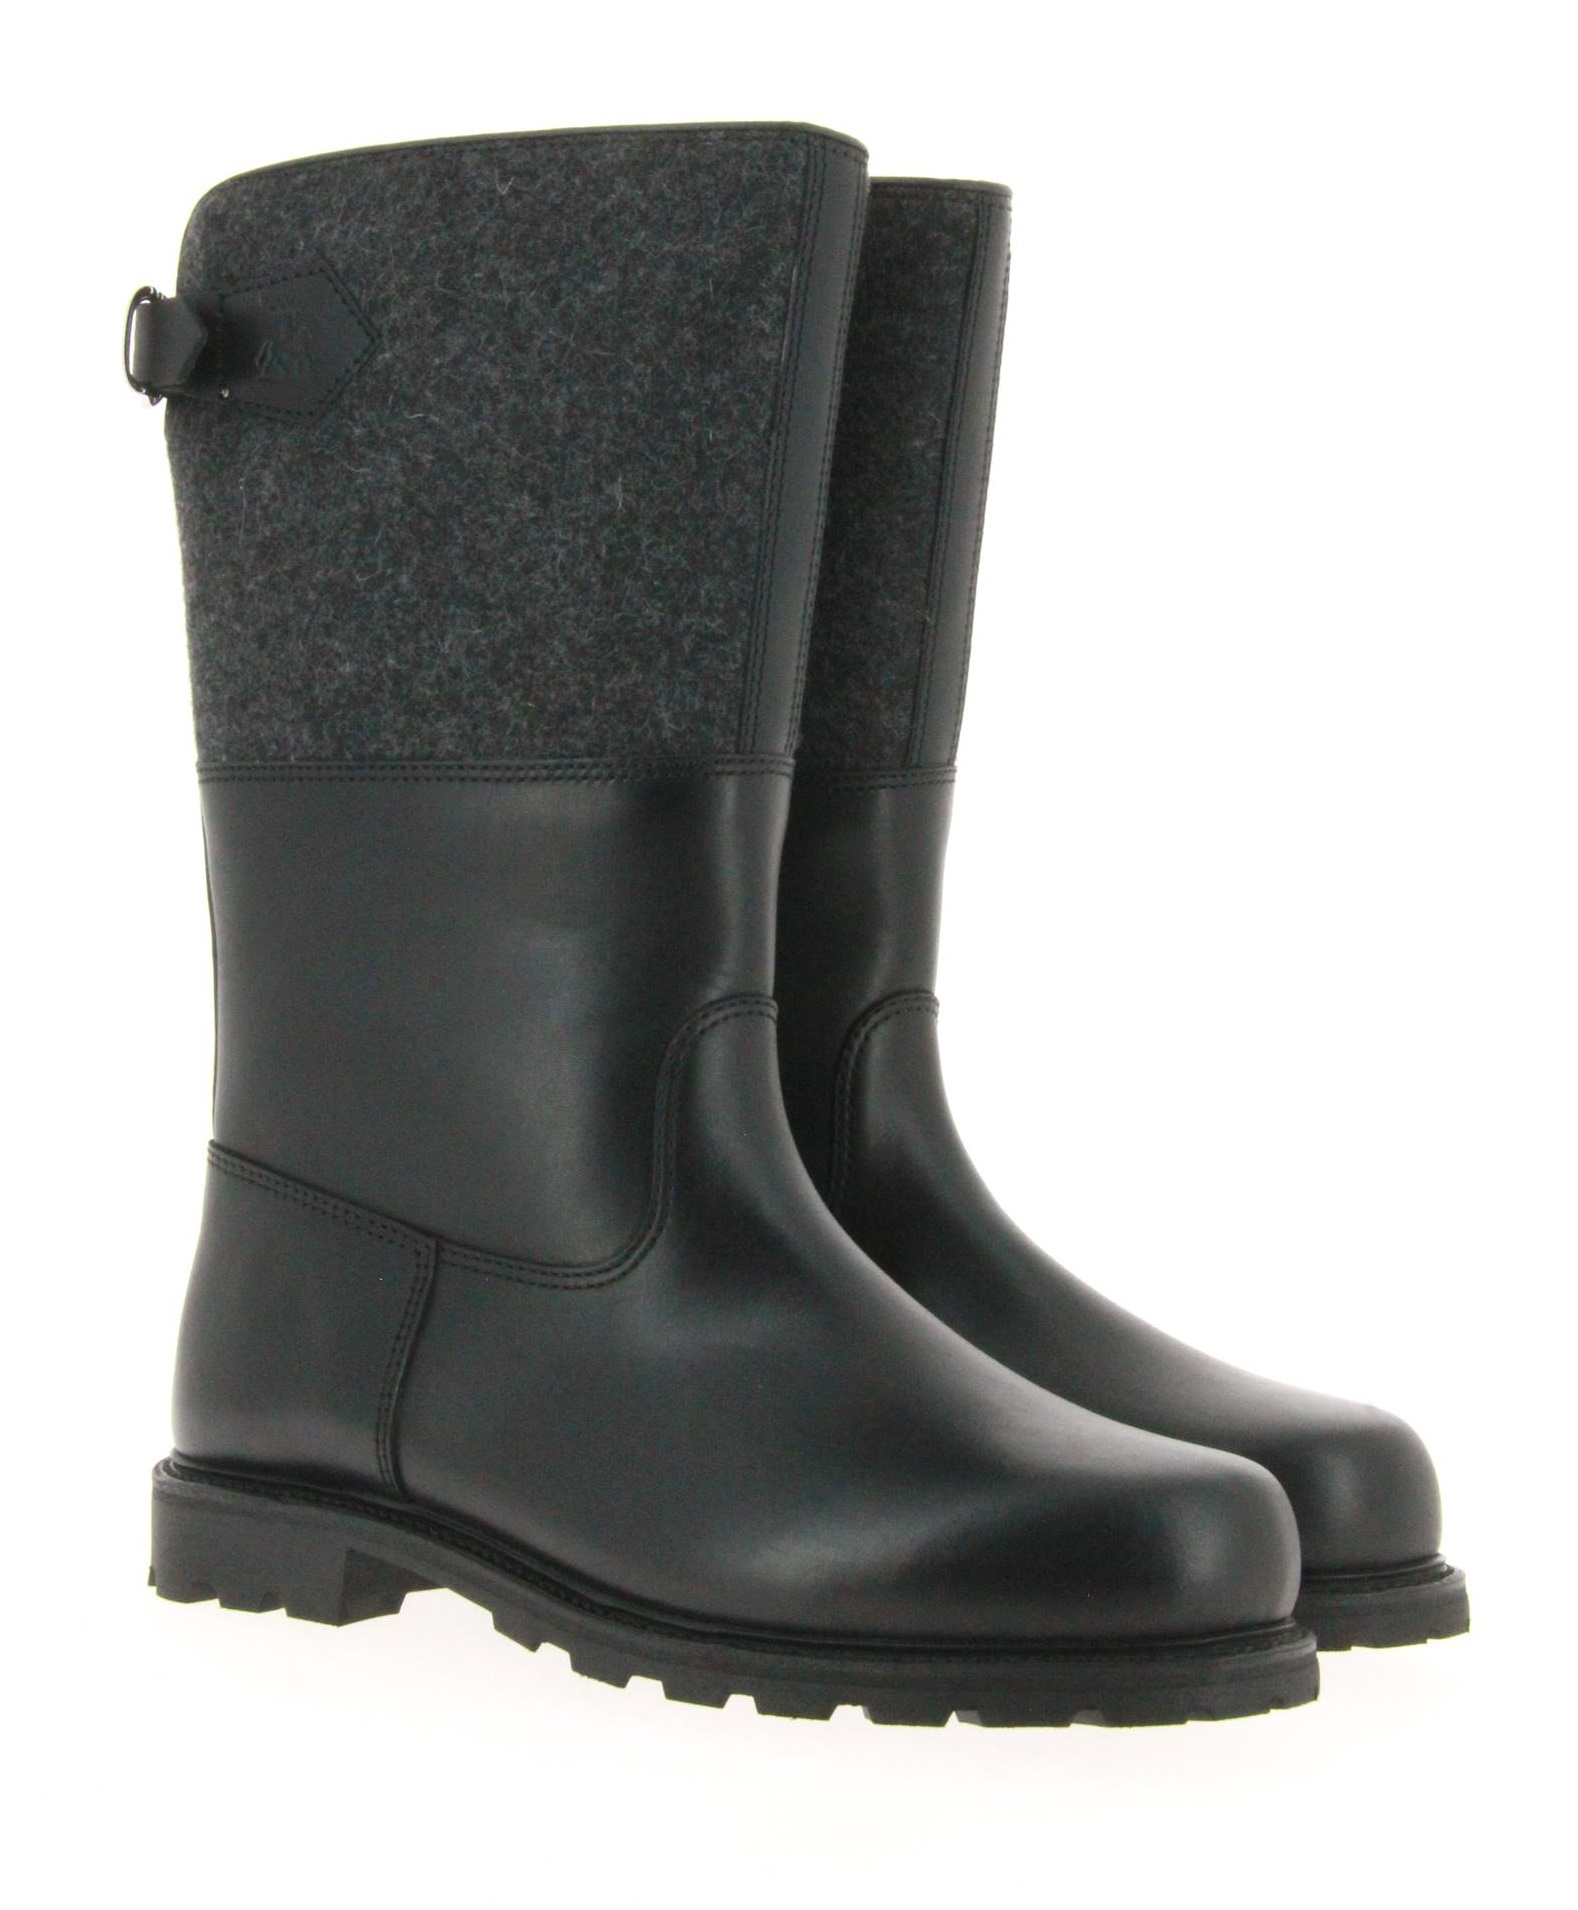 Ludwig Reiter boots lined MARONIBRATER RUSSIA LEATHER BLACK FELT ANTRA